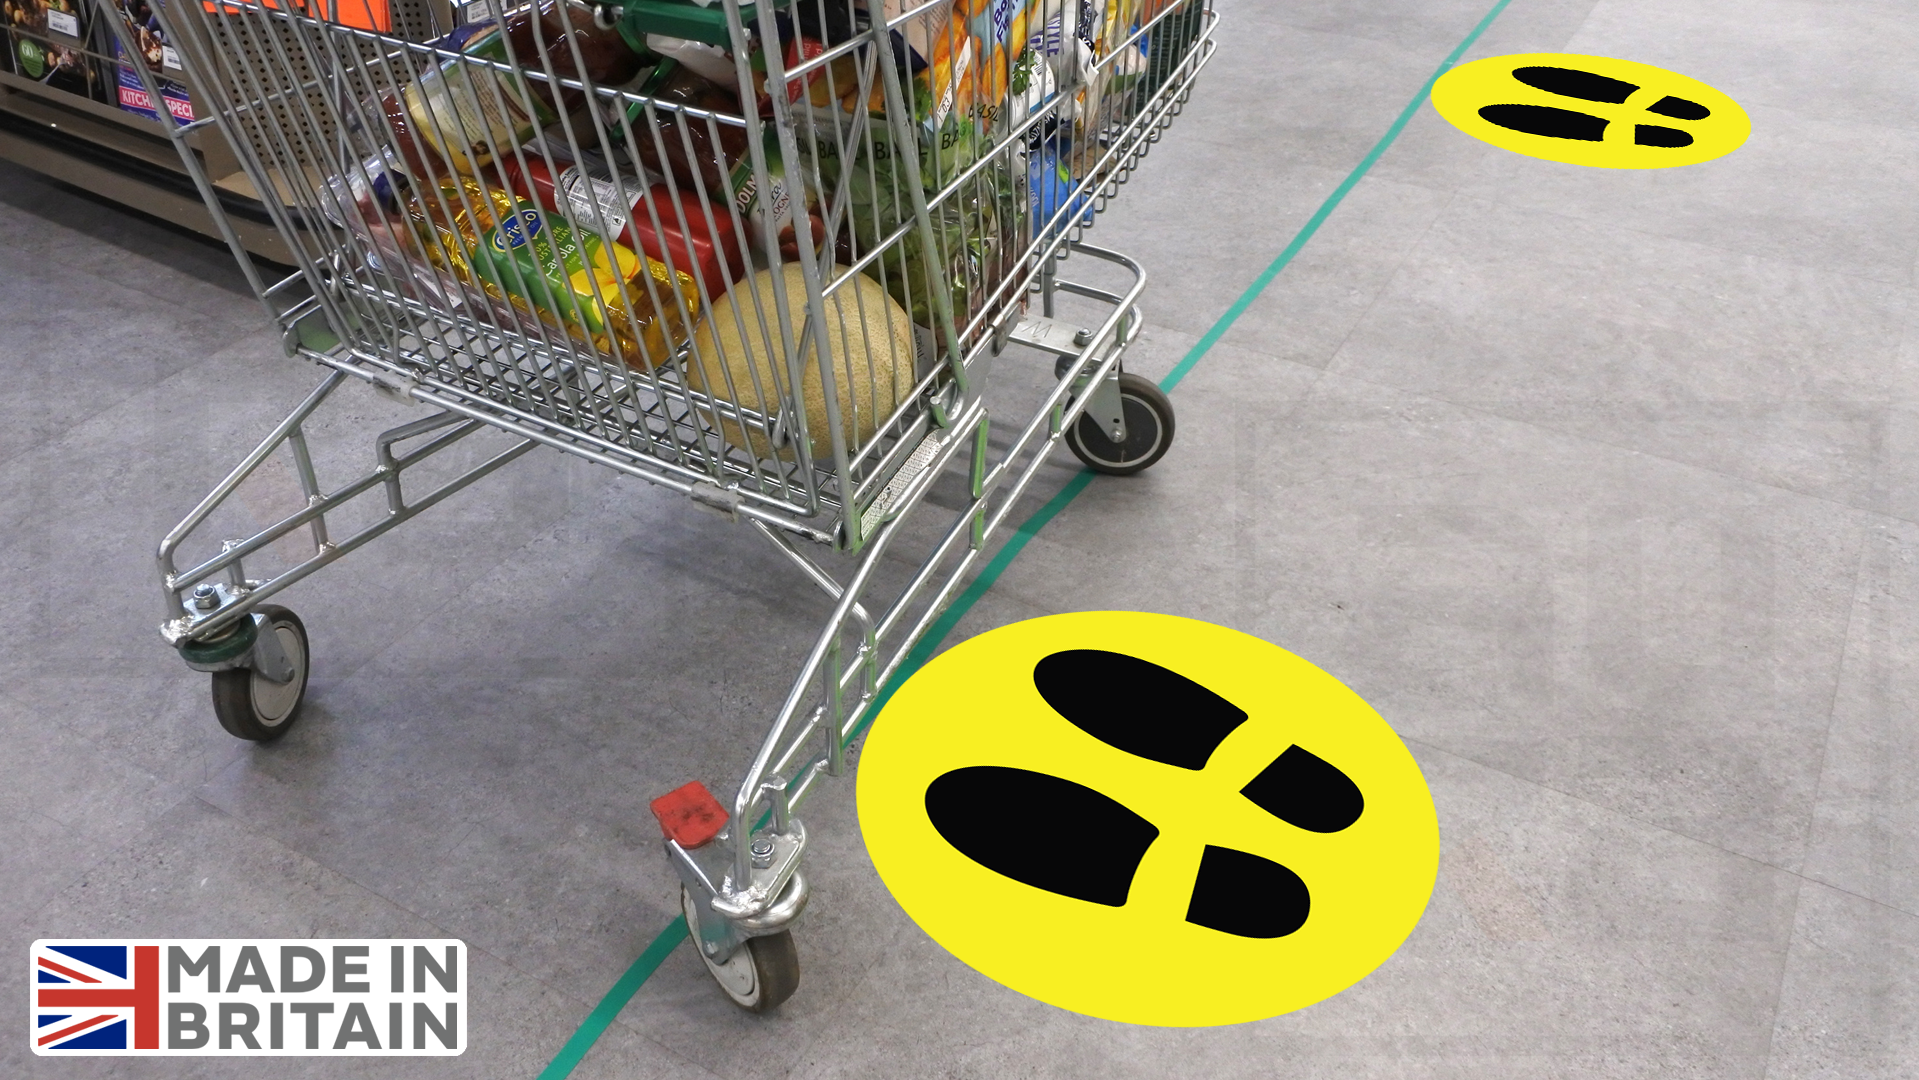 Footprint safety floor decals for supermarket, cafe or shop covid19